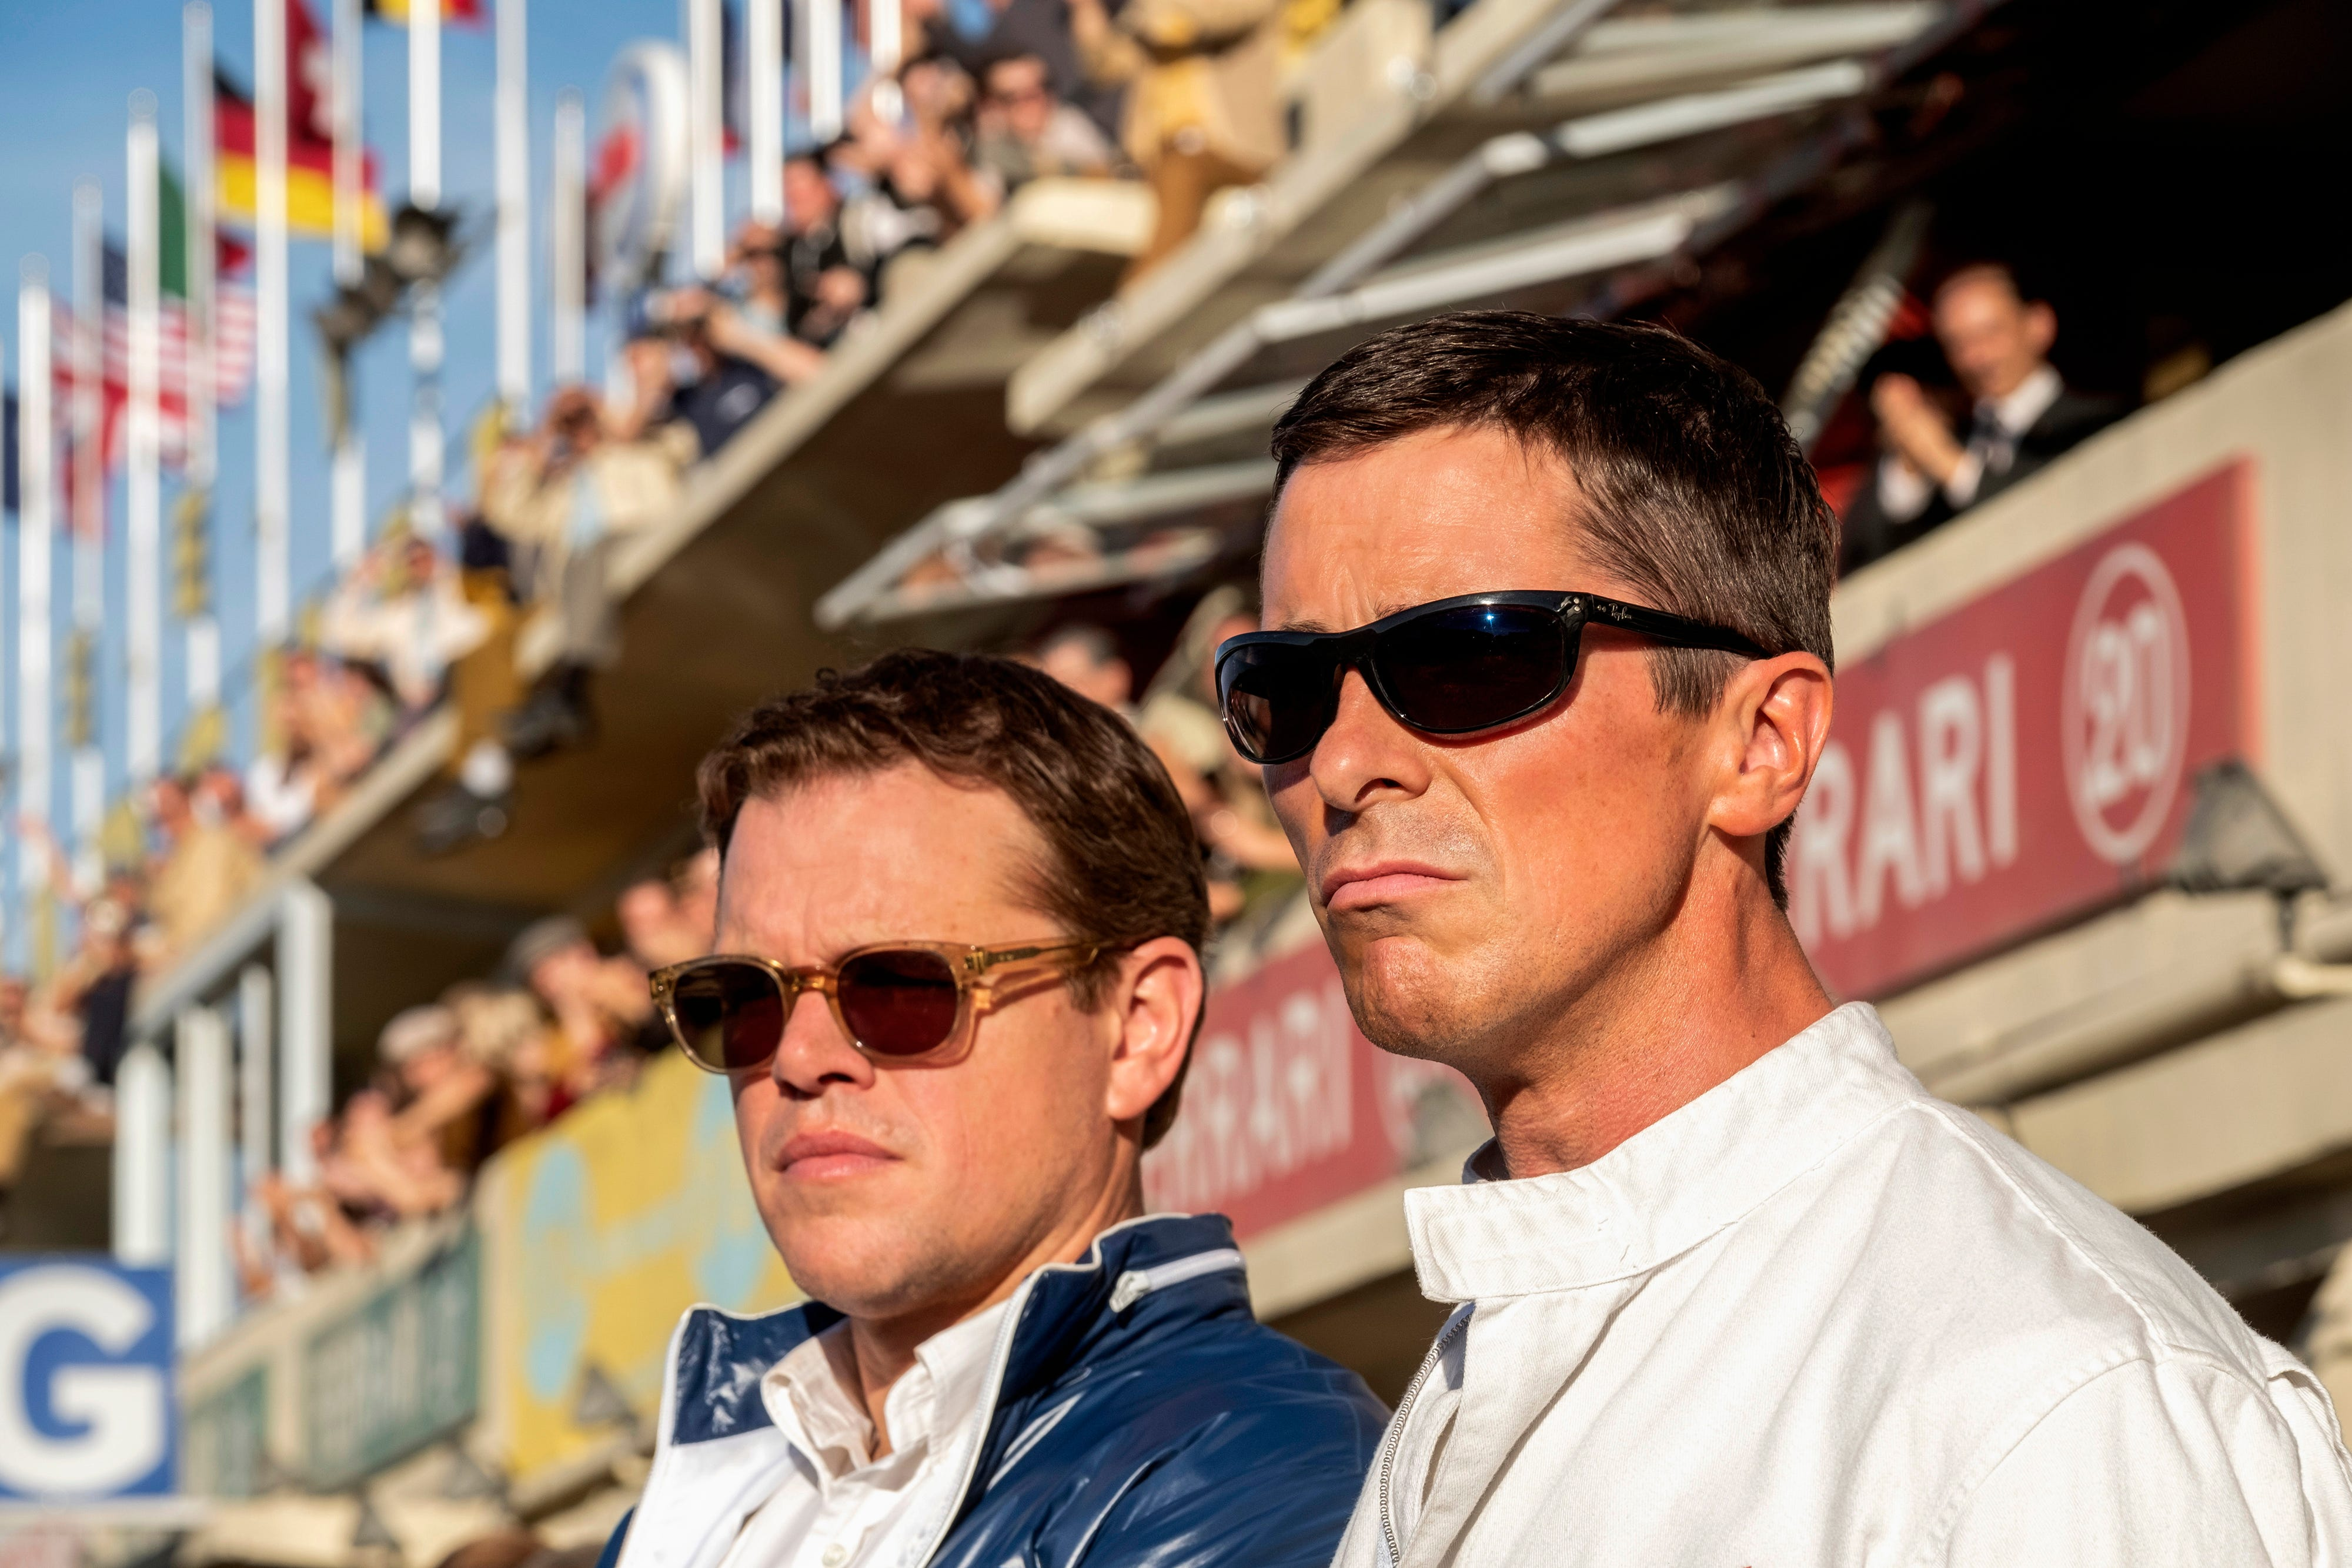 Review: The bromance is real in Matt Damon and Christian Bale's retro cool 'Ford v Ferrari' - USA TODAY